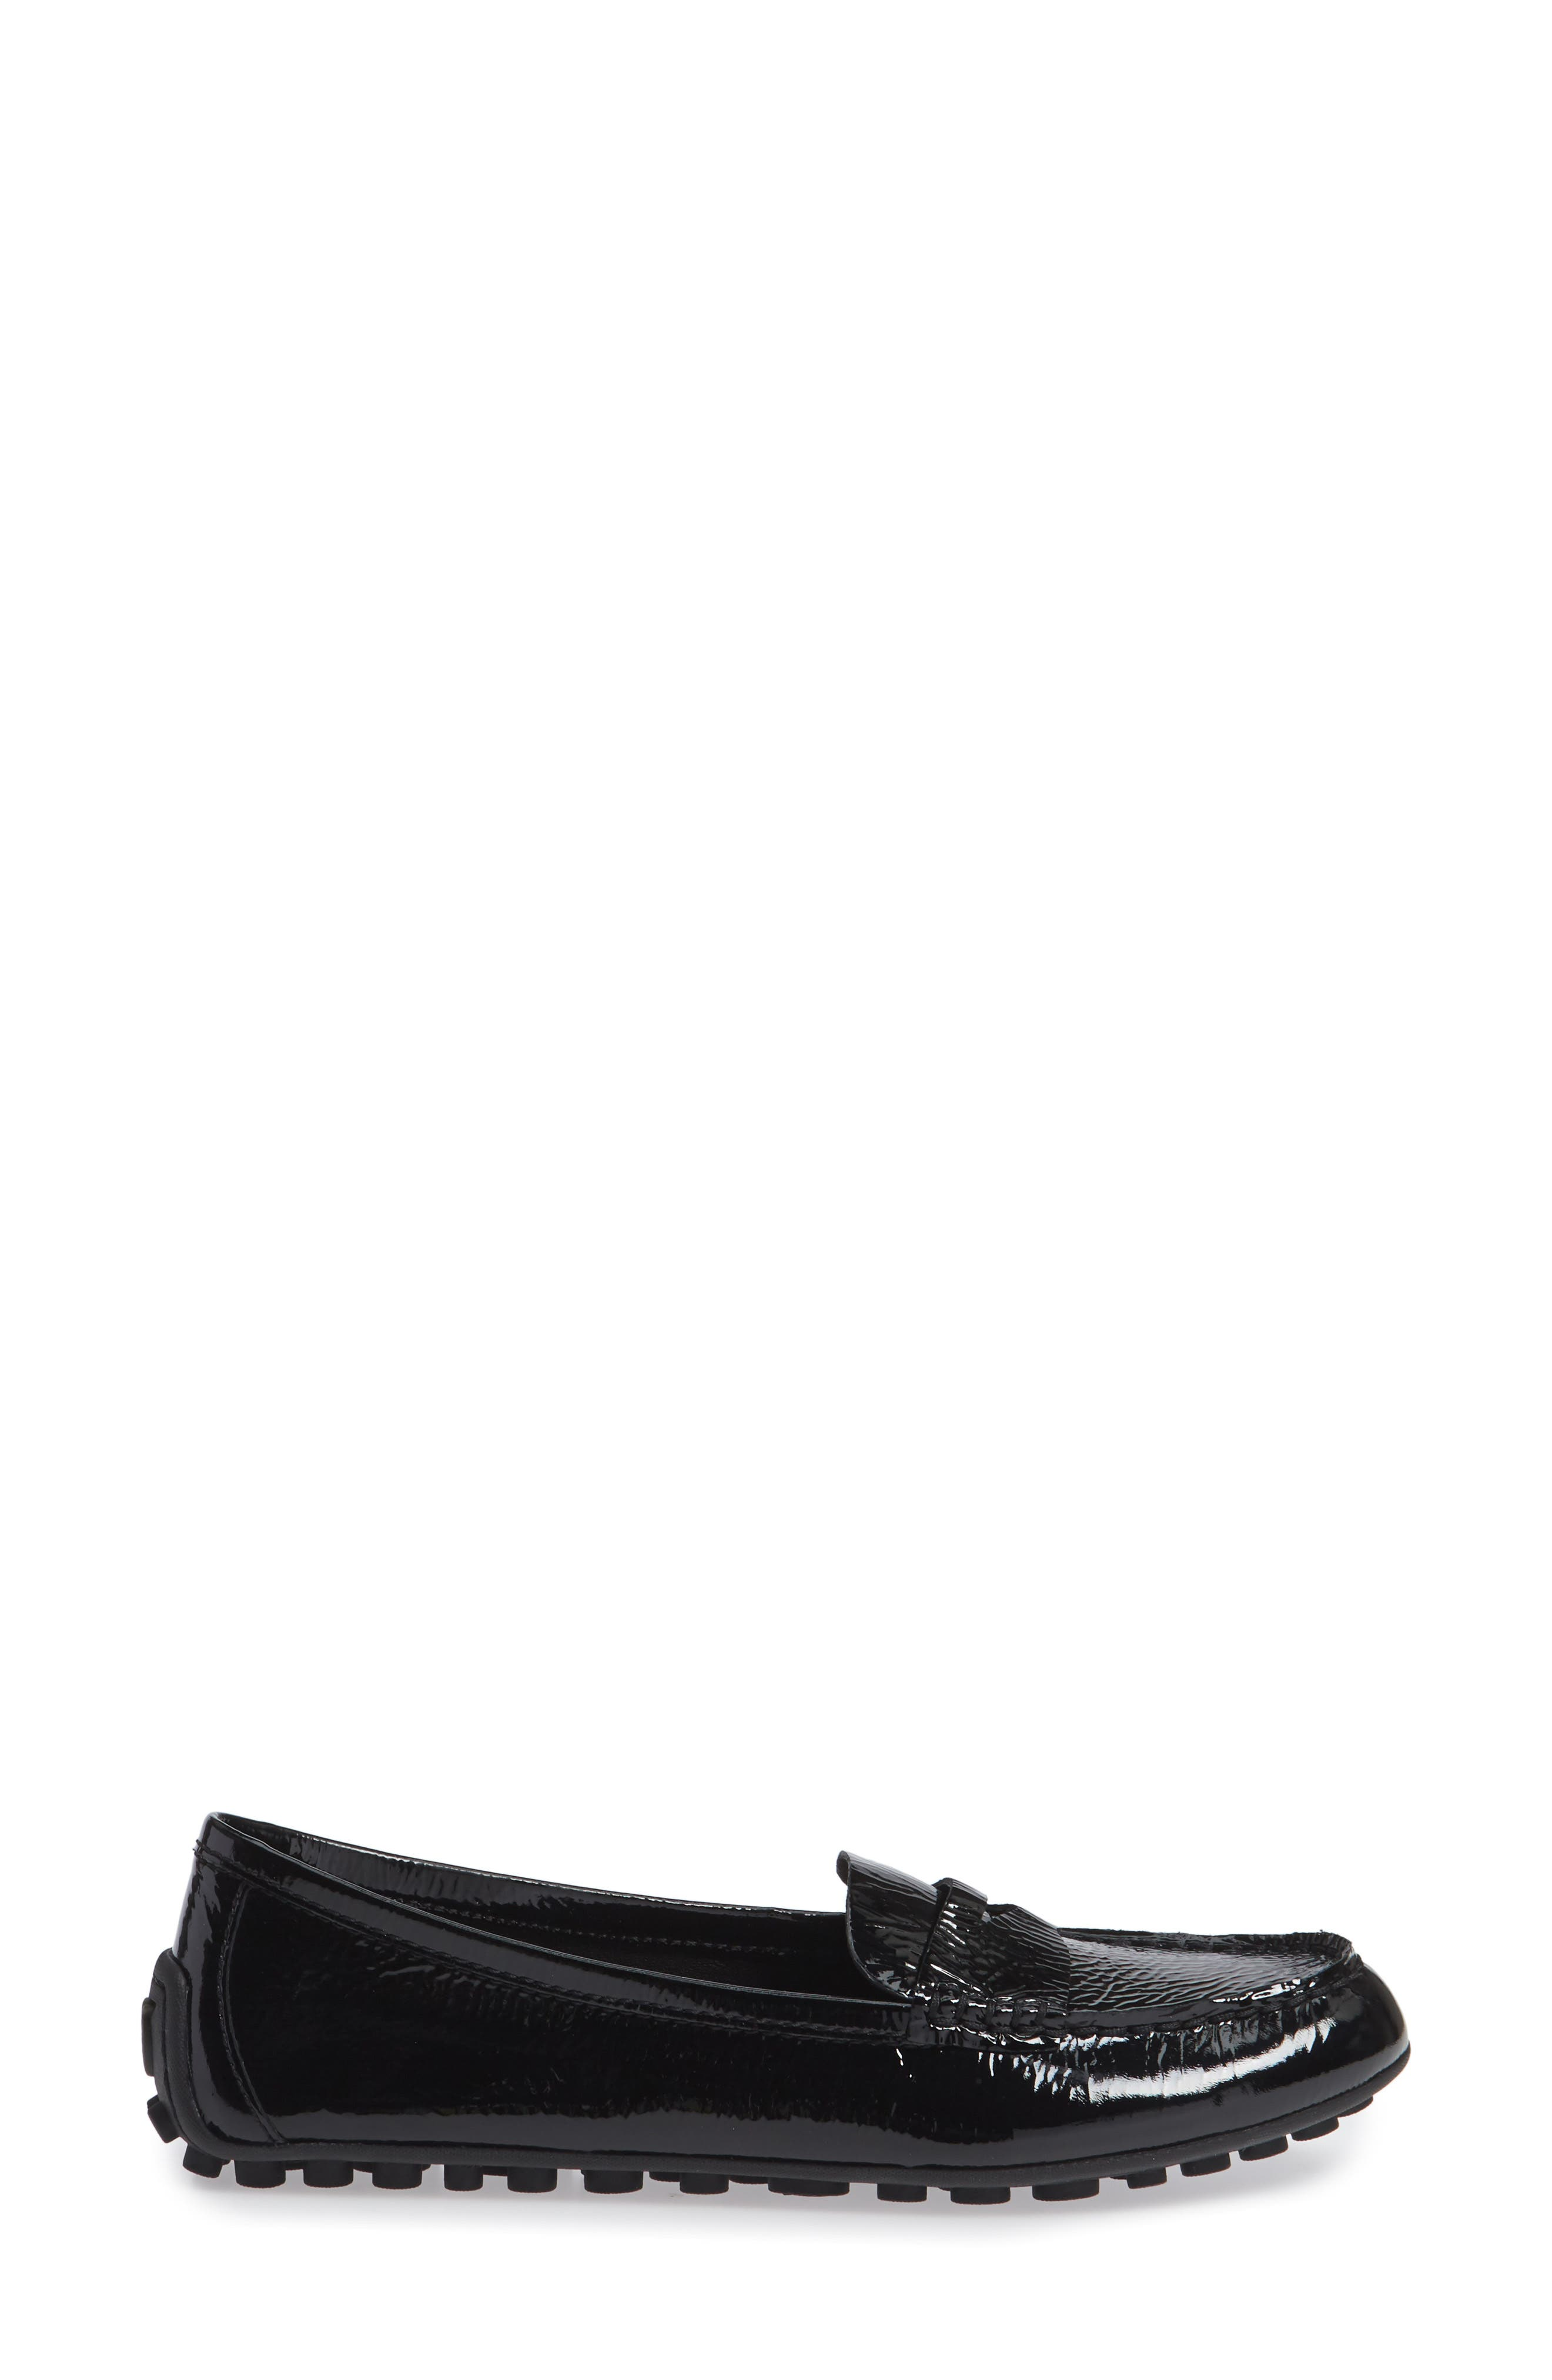 Malena Driving Loafer,                             Alternate thumbnail 3, color,                             BLACK PATENT LEATHER